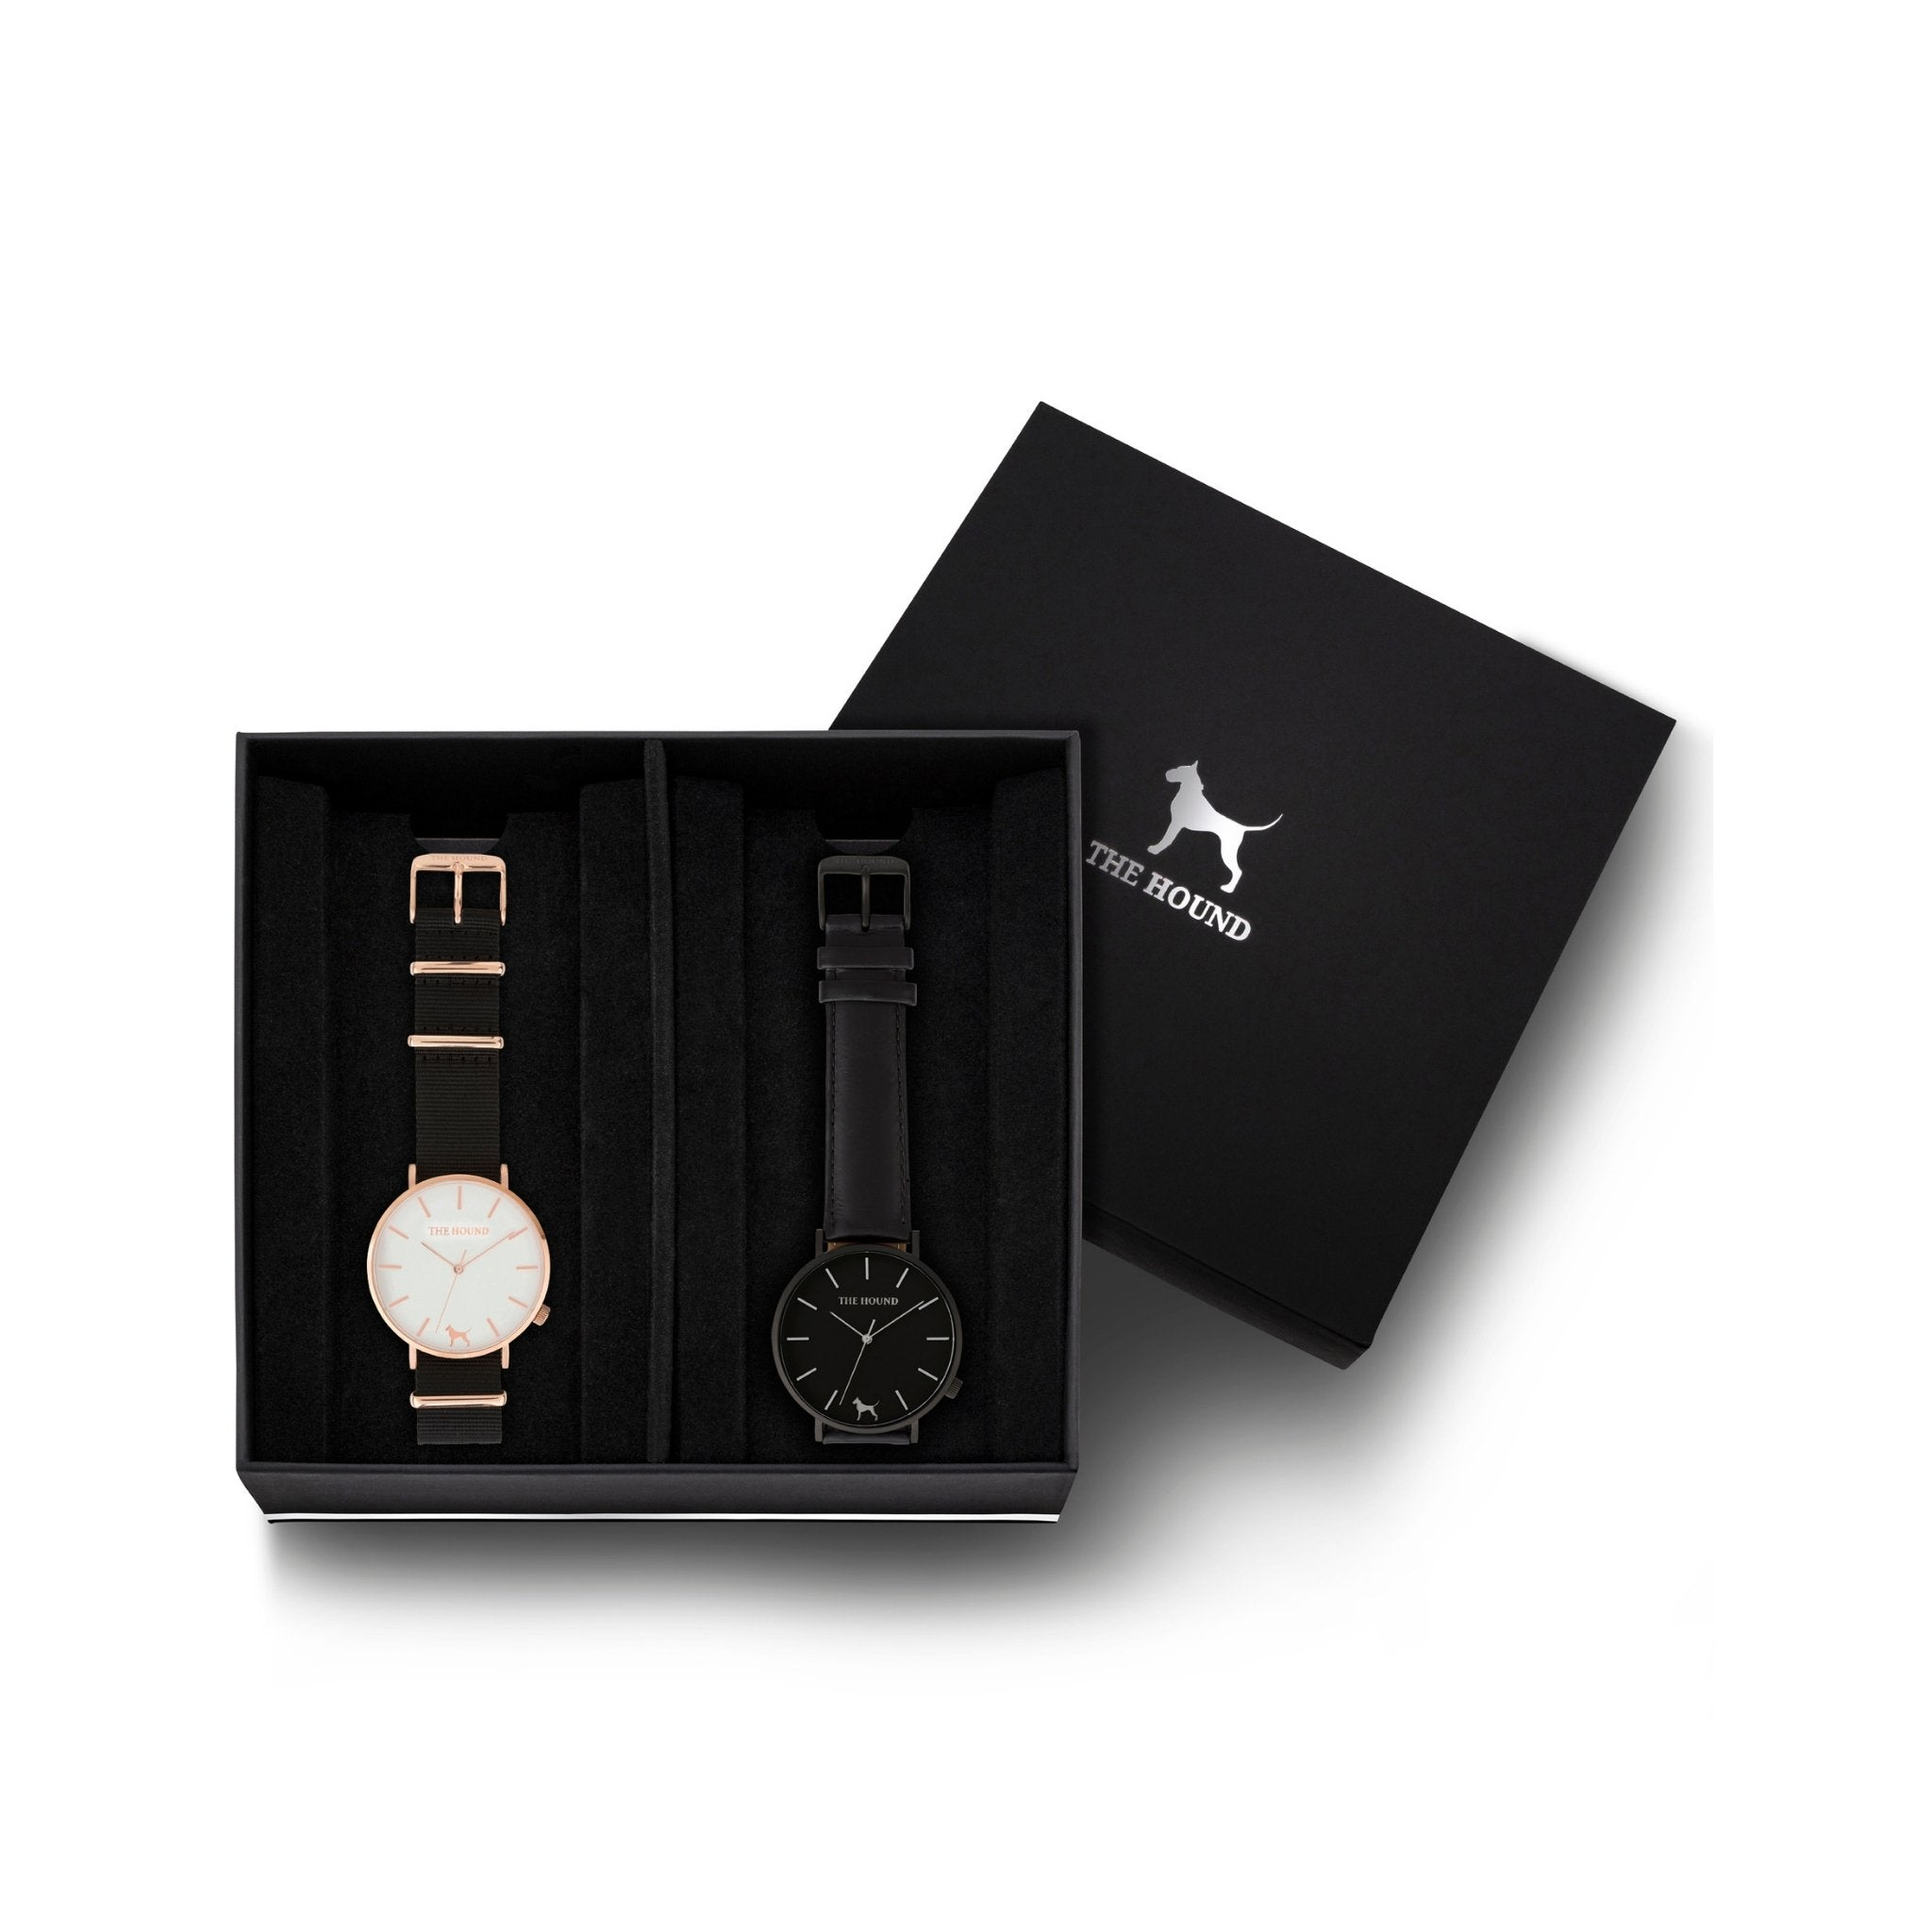 Custom gift set - Rose gold and white watch with black nato band and a matte black and black watch with stitched black genuine leather band